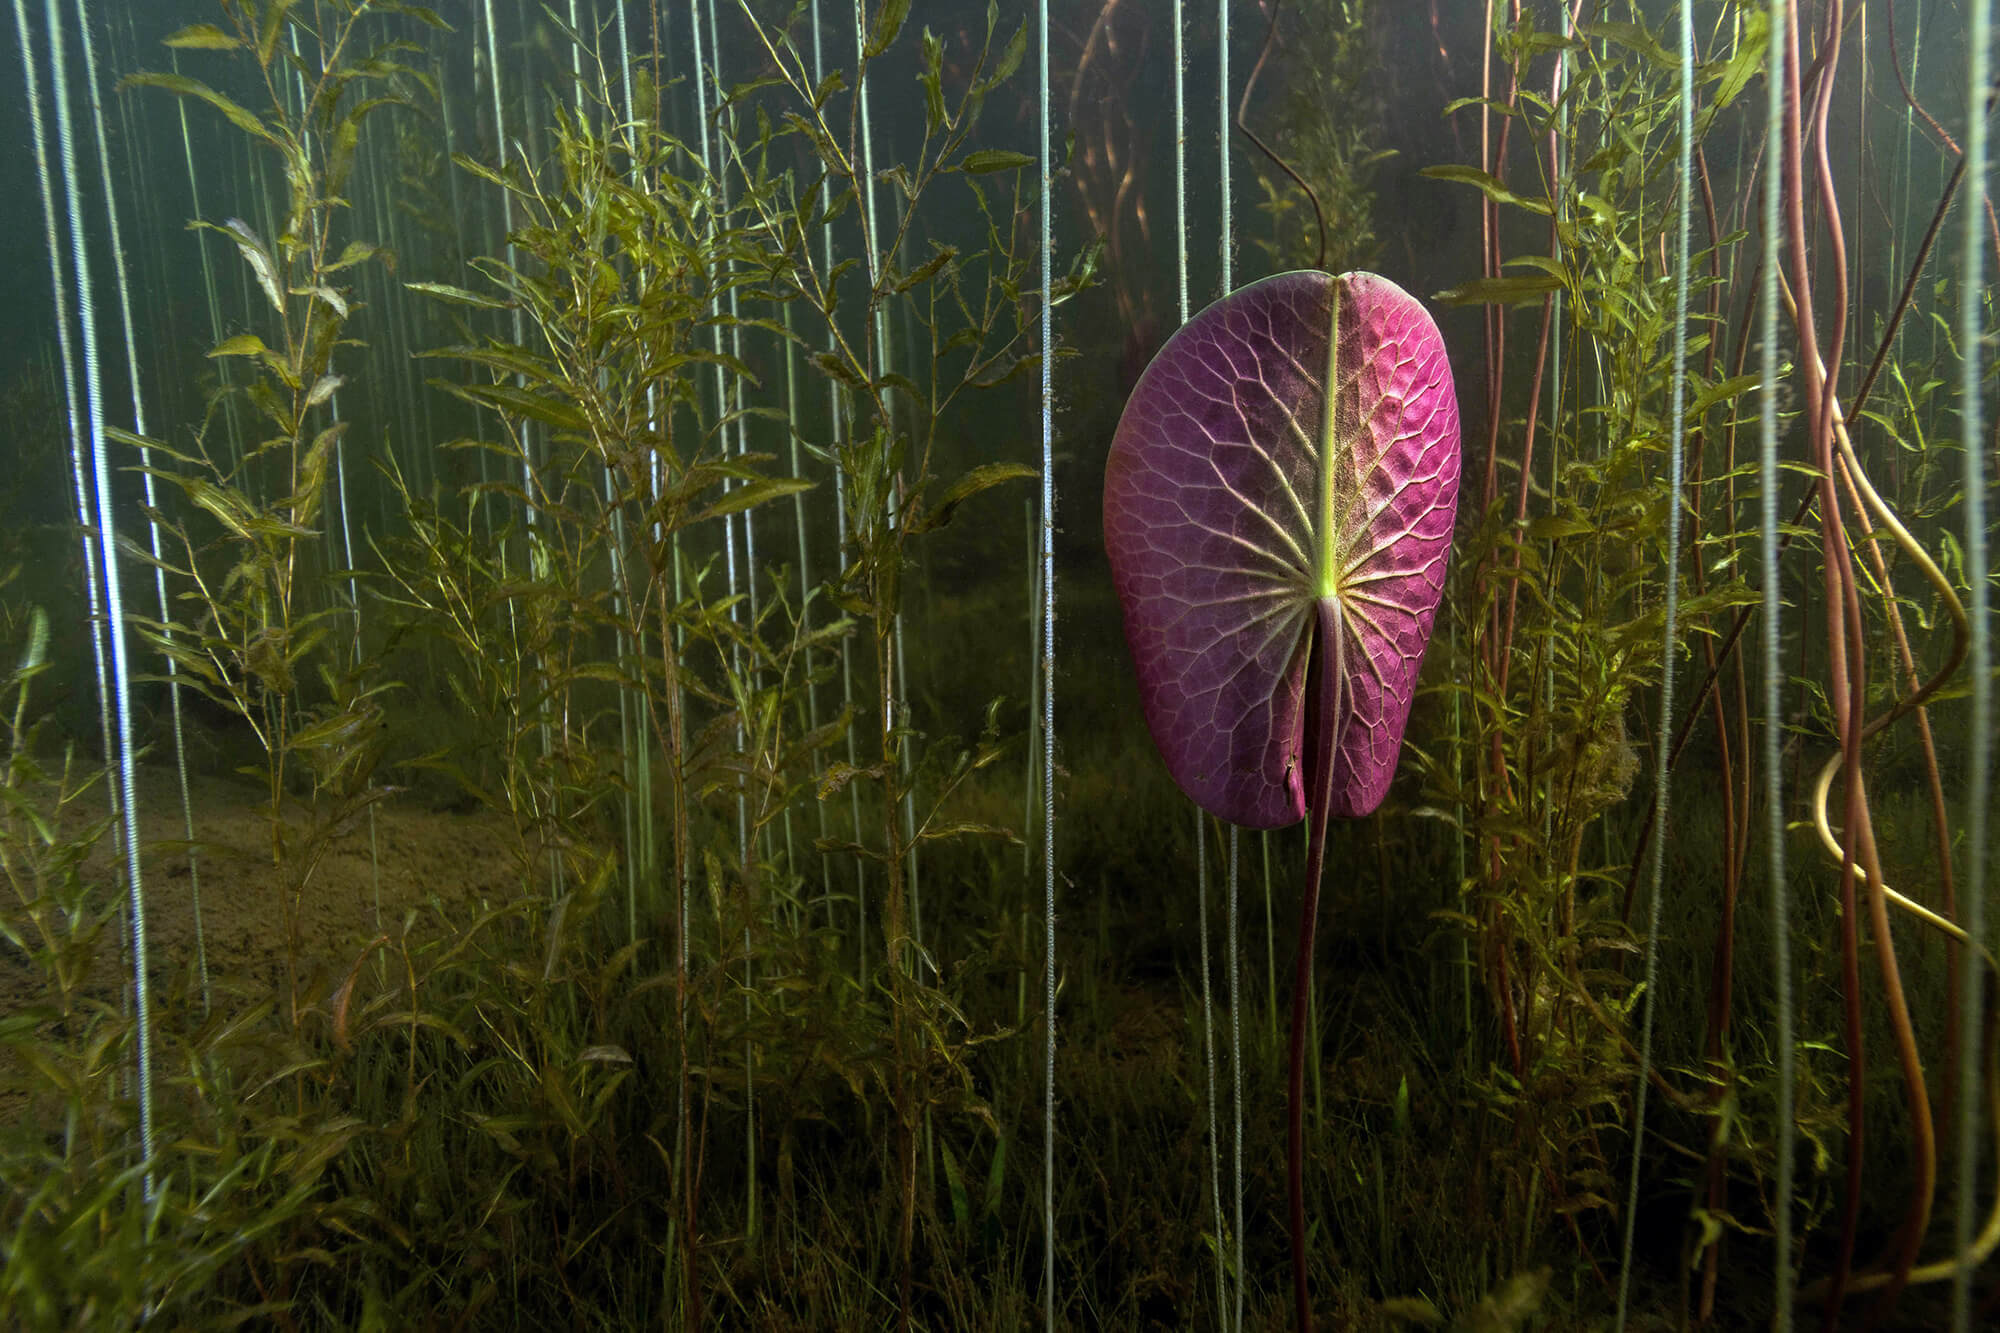 A Pink Lily Pad Underwater in Finlayson Point Park, Lake Temagami, Ontario, Scuba Diving Canada